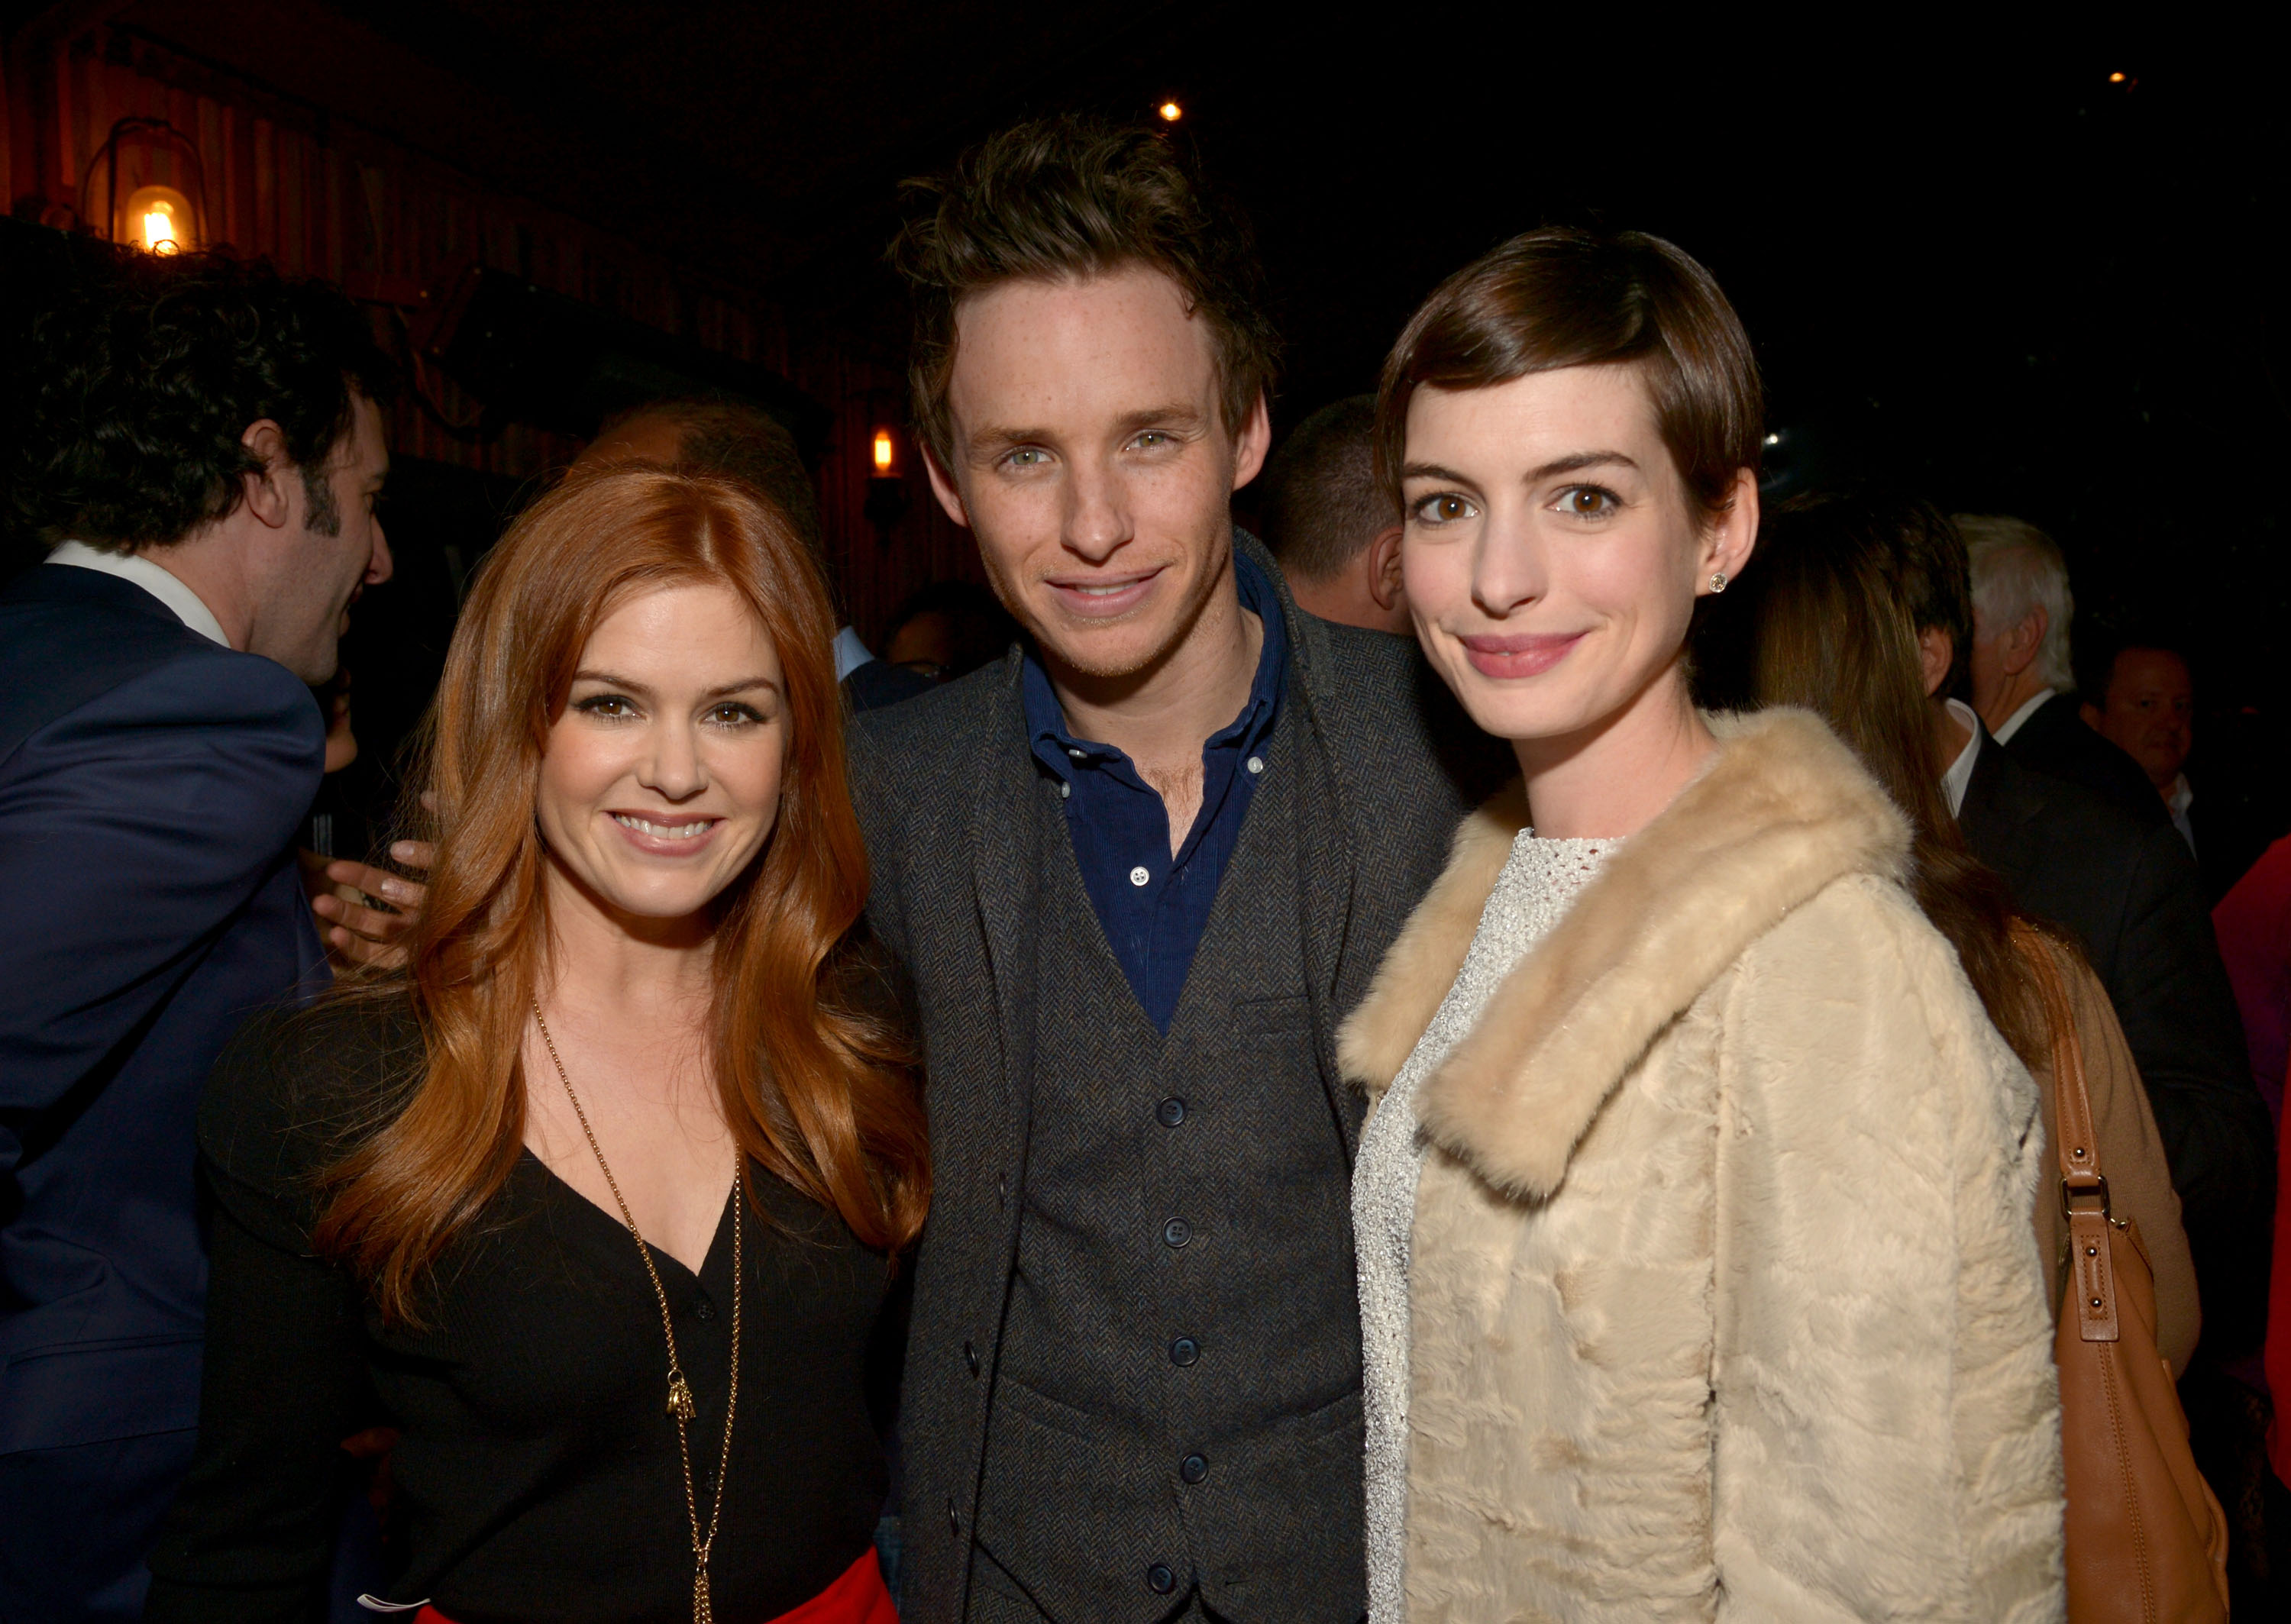 Anne Hathaway, Isla Fisher, and Eddie Redmayne hung out at a Les Misérables pre-Oscars party i